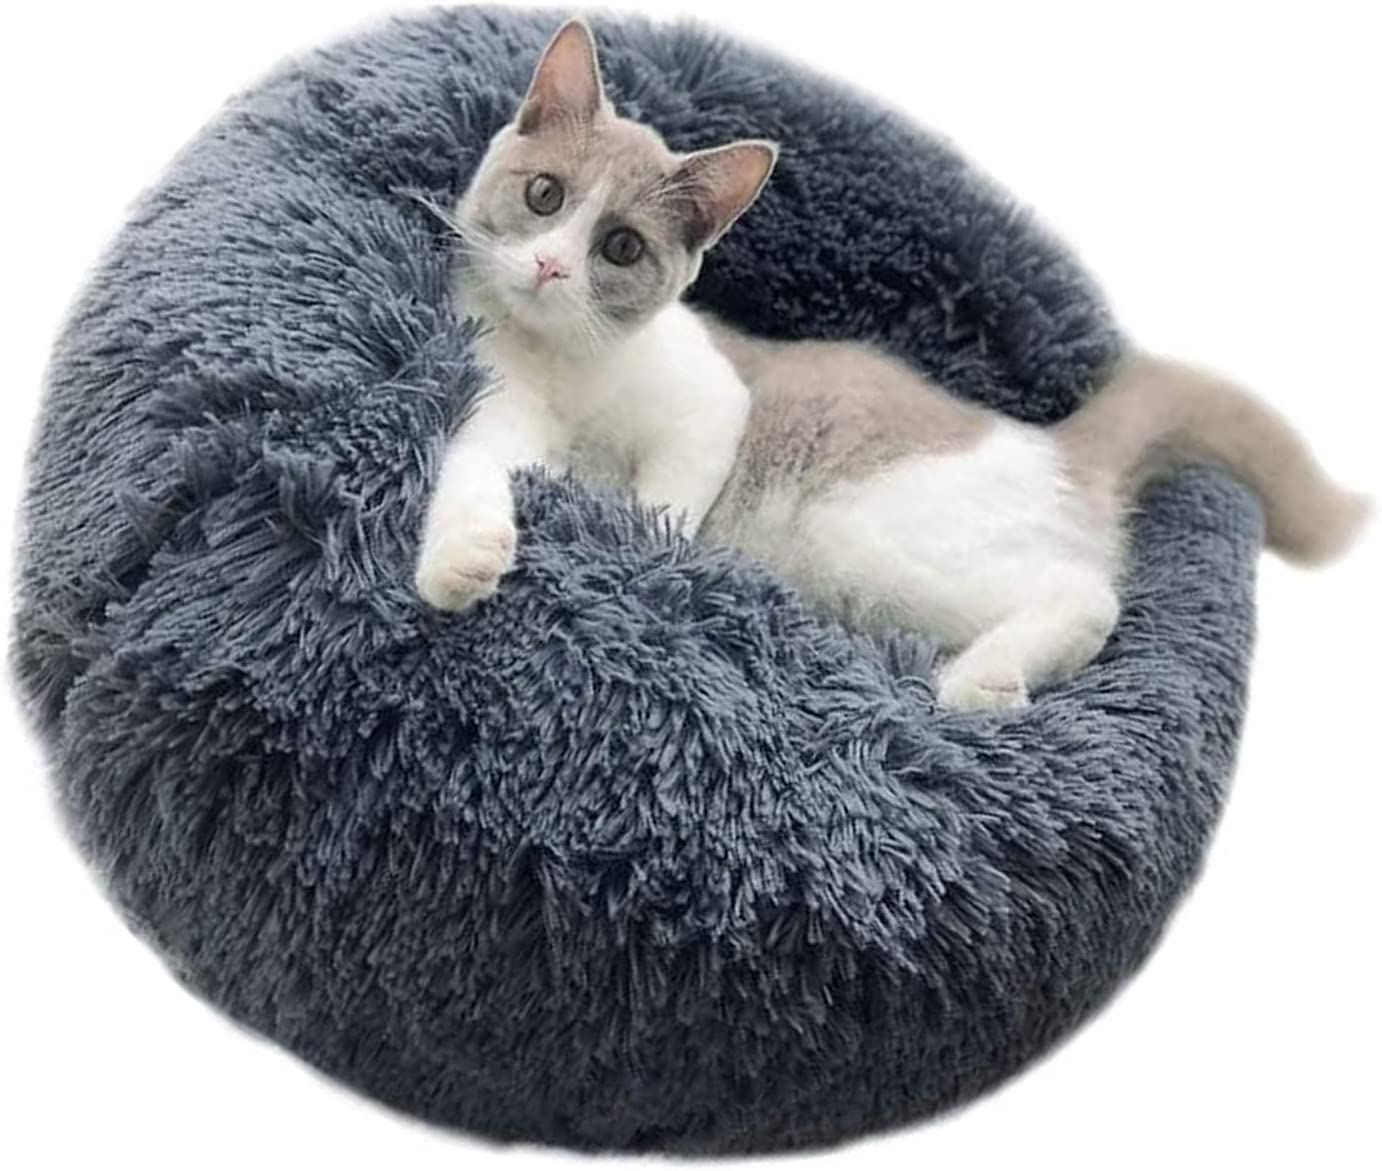 ZINGYUE Calming Cat Bed Safety and trust Dog Donut Pet Plush Cuddl Boston Mall Cushion Fluffy